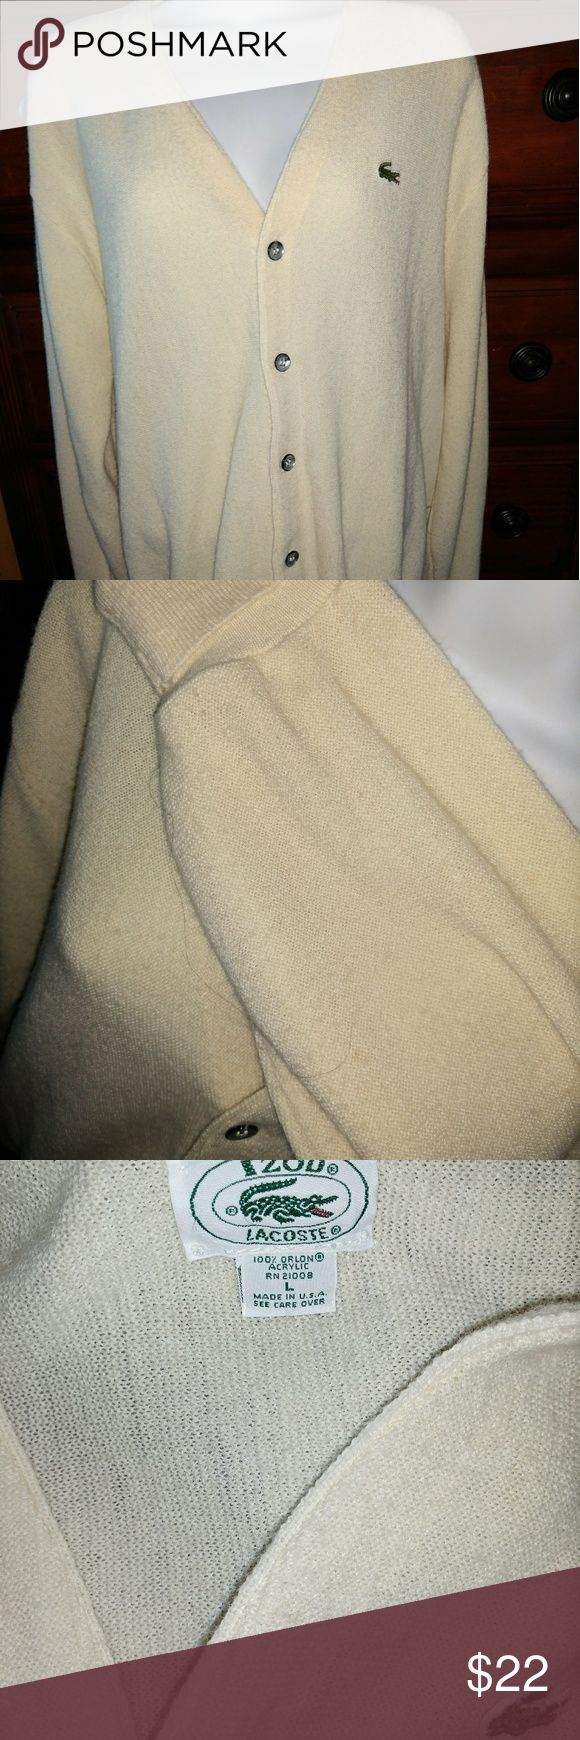 🍁🍂Vintage Izod Lacoste Size Large cardigan Cream Cream colored vintage Izod Lacoste Cardigan. Perfect for fall and winter. Has some wear due to age, but not holes, stains rips or tears.  Open to all offers! DISCOUNTS ON 2 OR MORE ITEMS! Izod Sweaters Cardigans